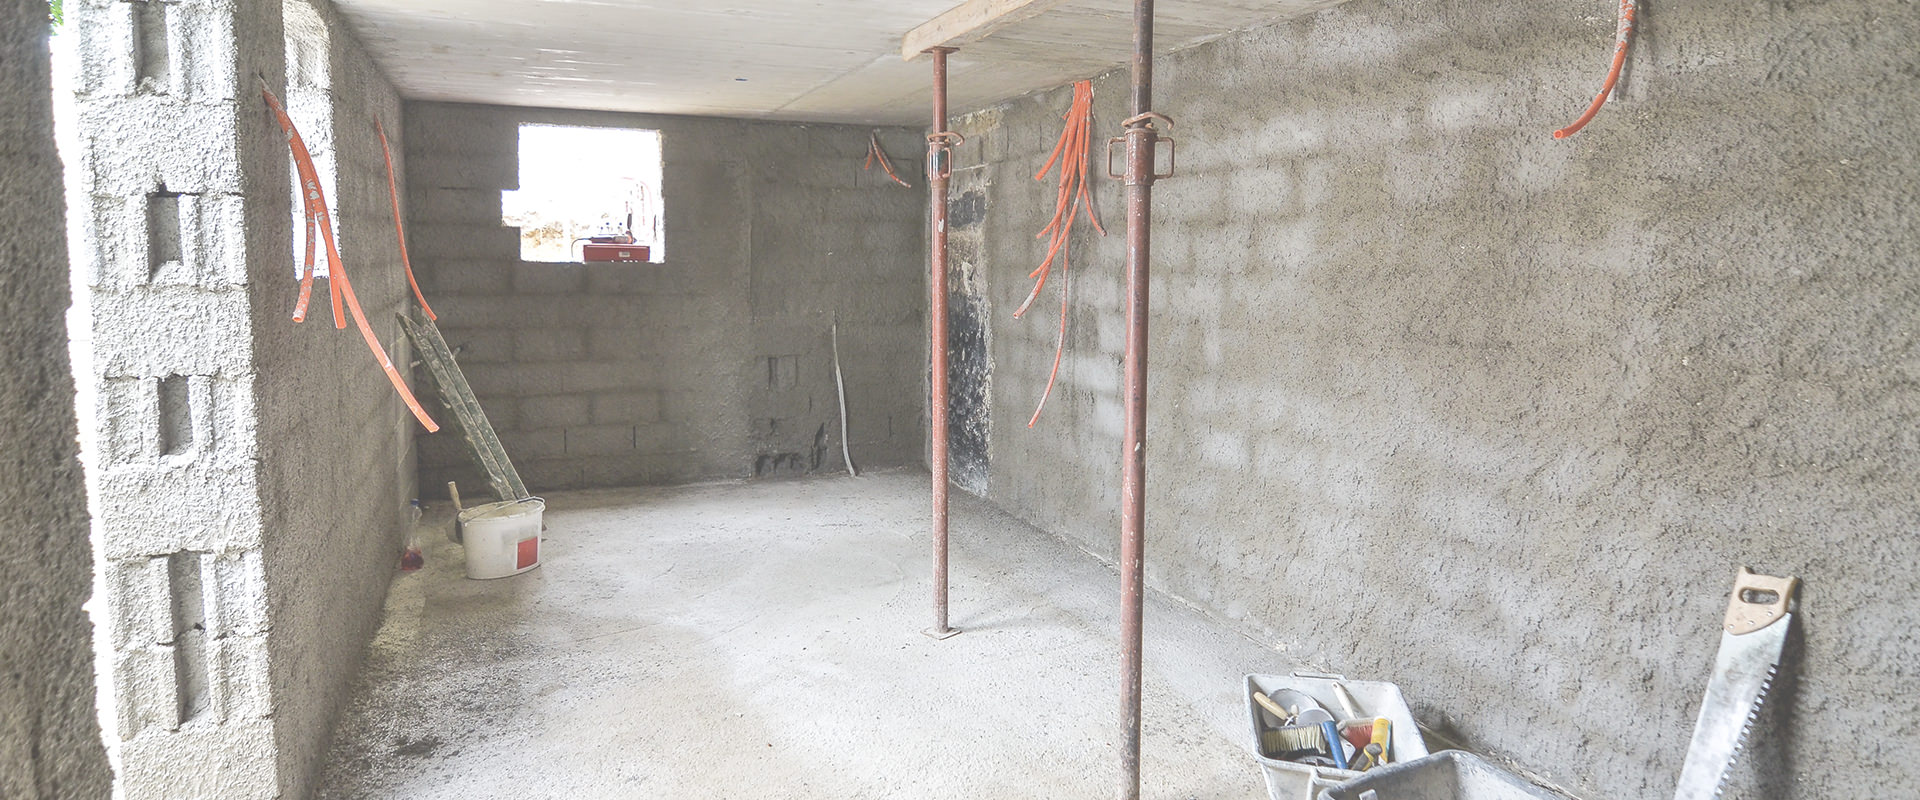 Basement Waterproofing Liverpool